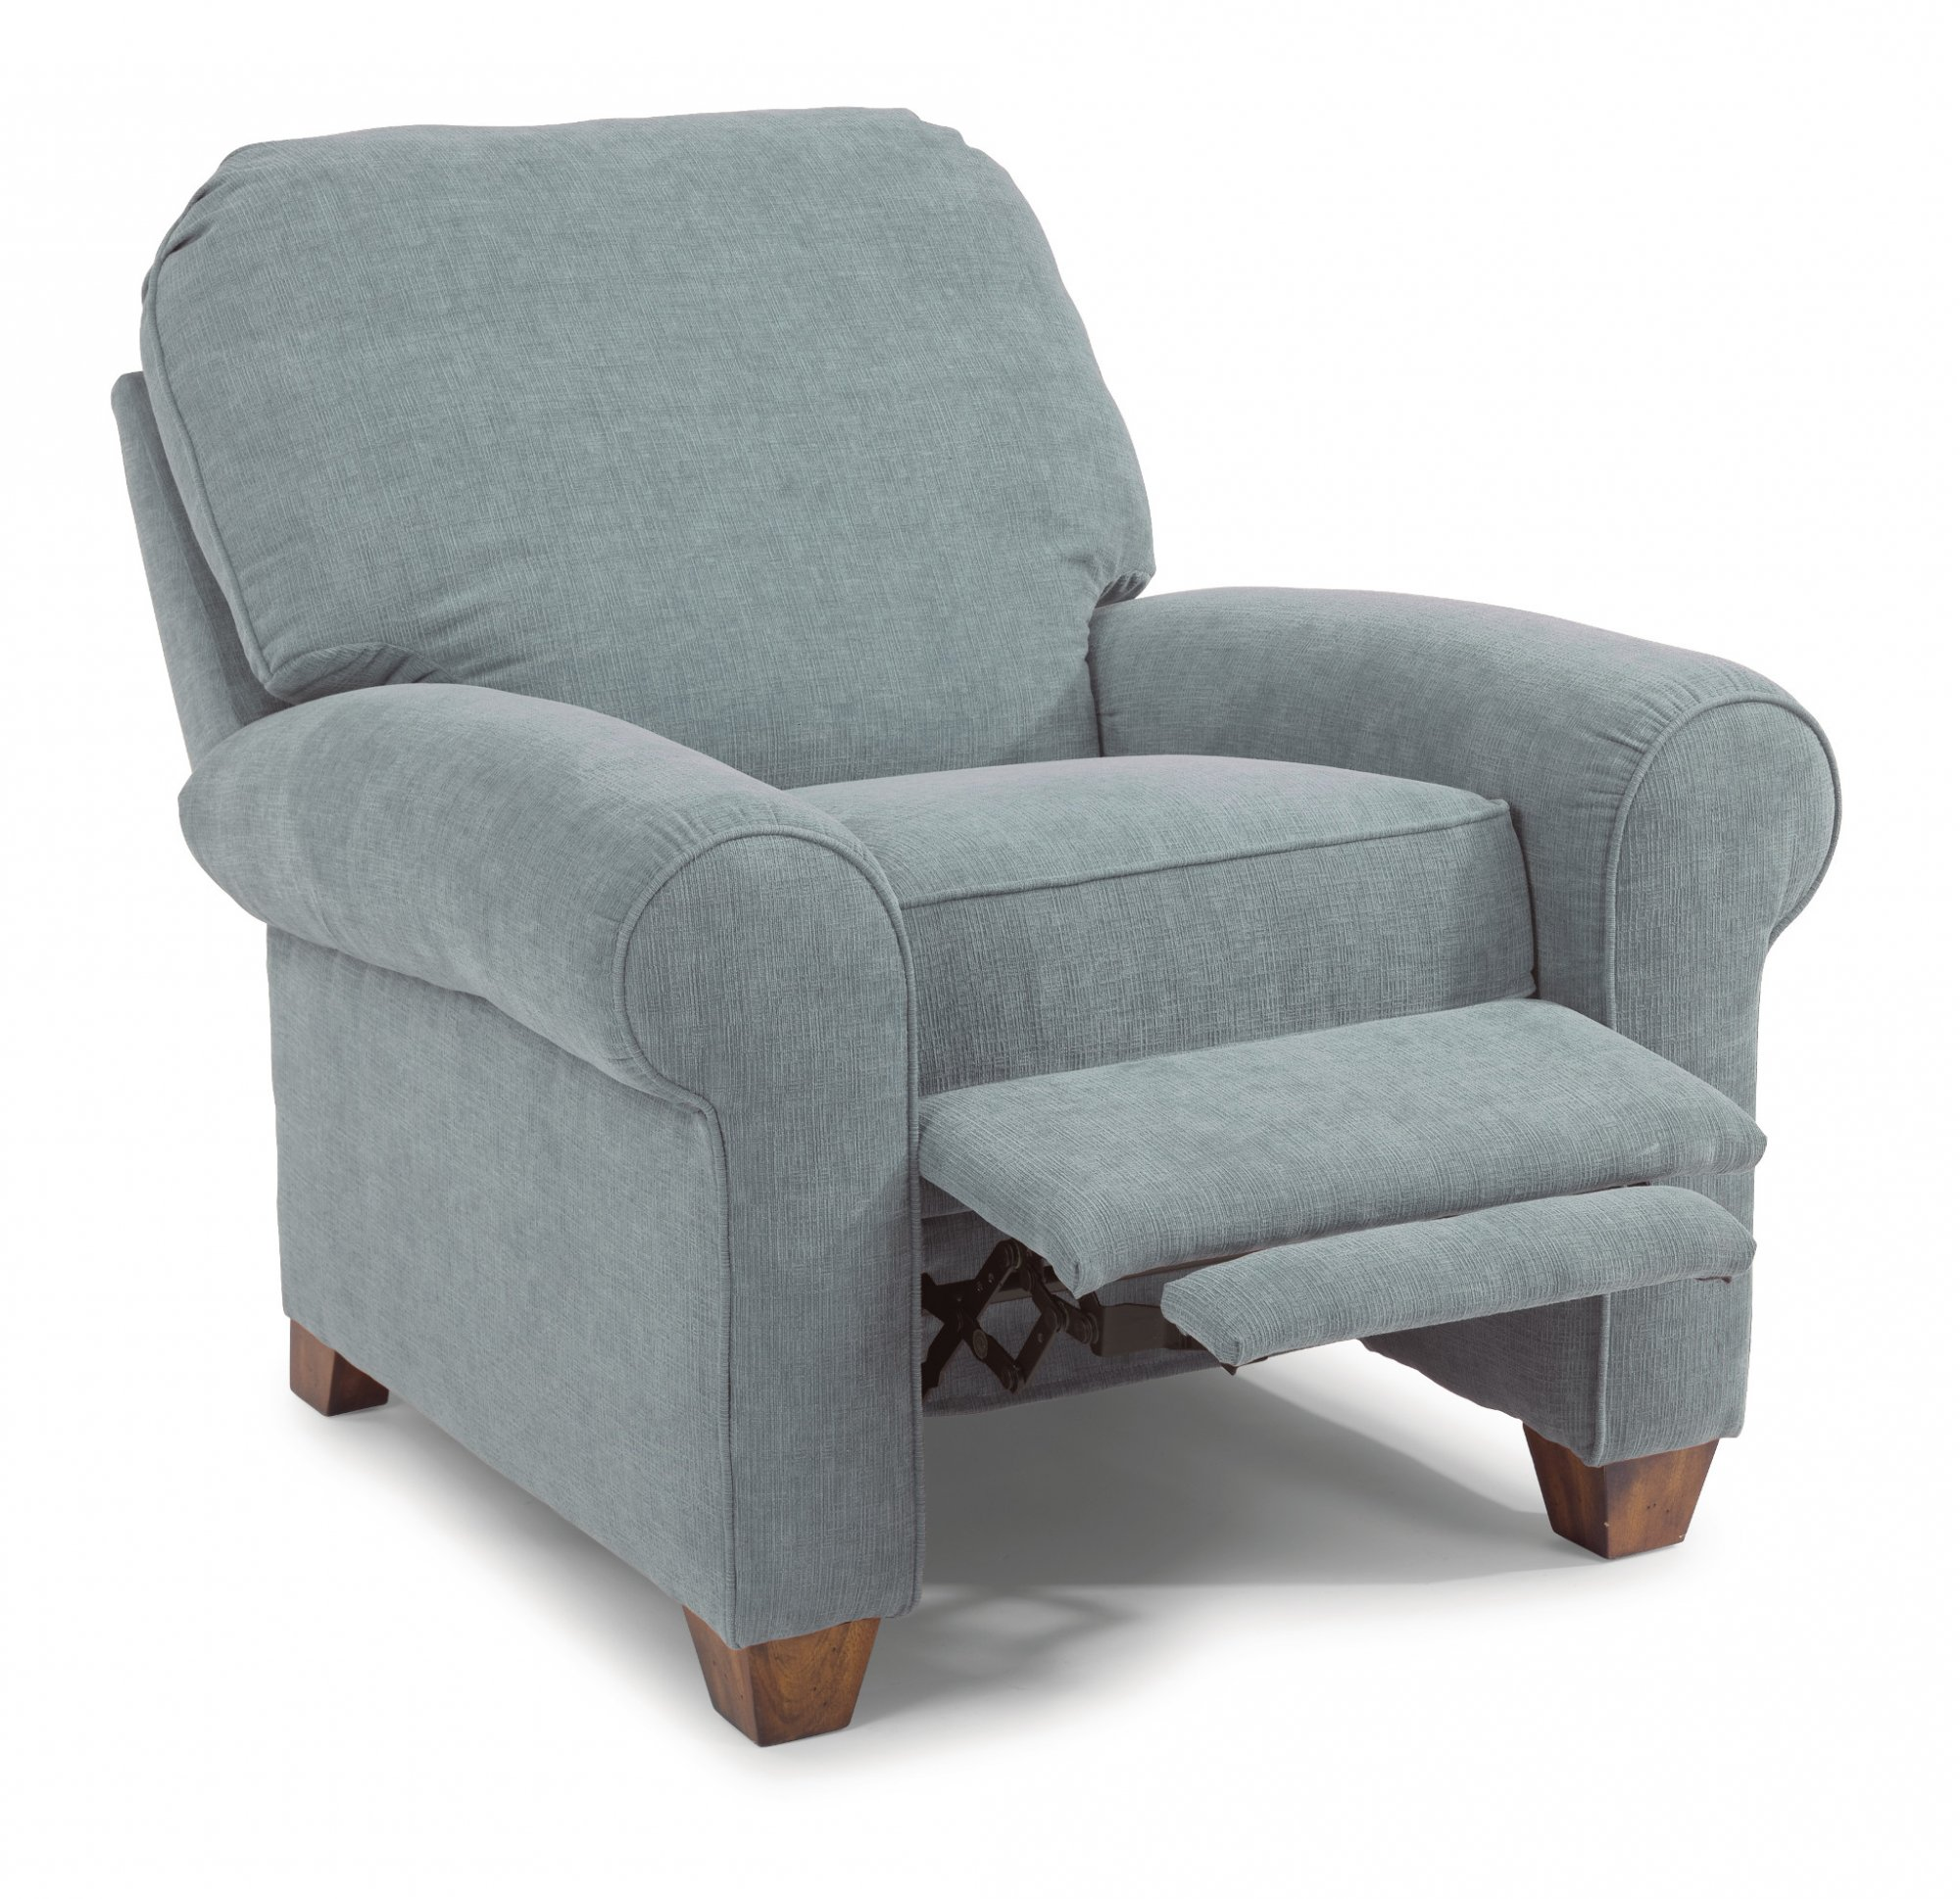 High Leg Recliner. share via email download a image  sc 1 st  Homes by Reckelhoff & High Leg Recliner. Franklin Hannigan Lola Hannigan Pushback ... islam-shia.org